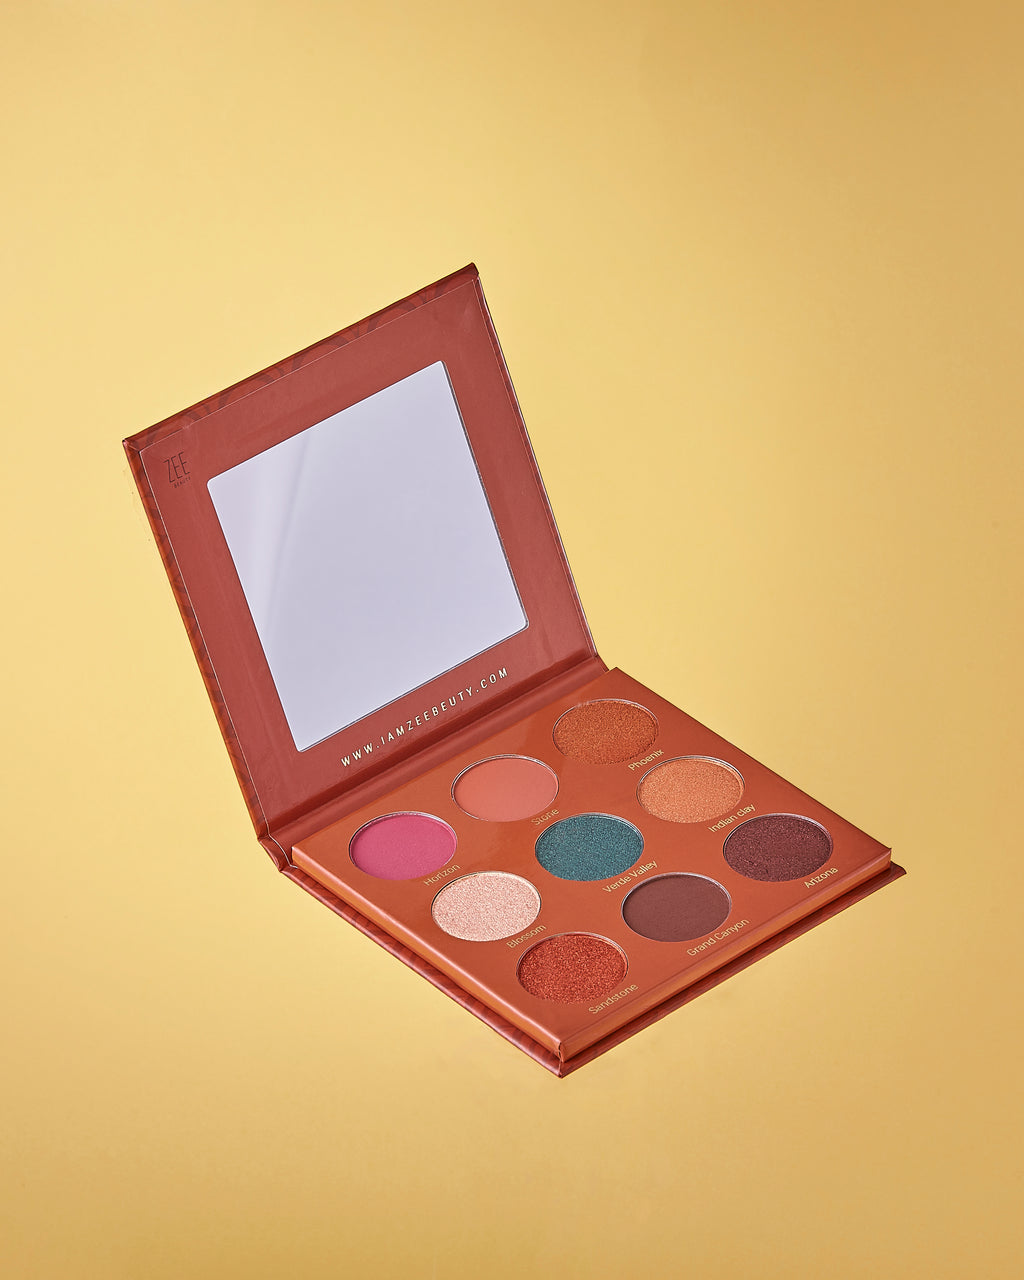 The Sedona Palette